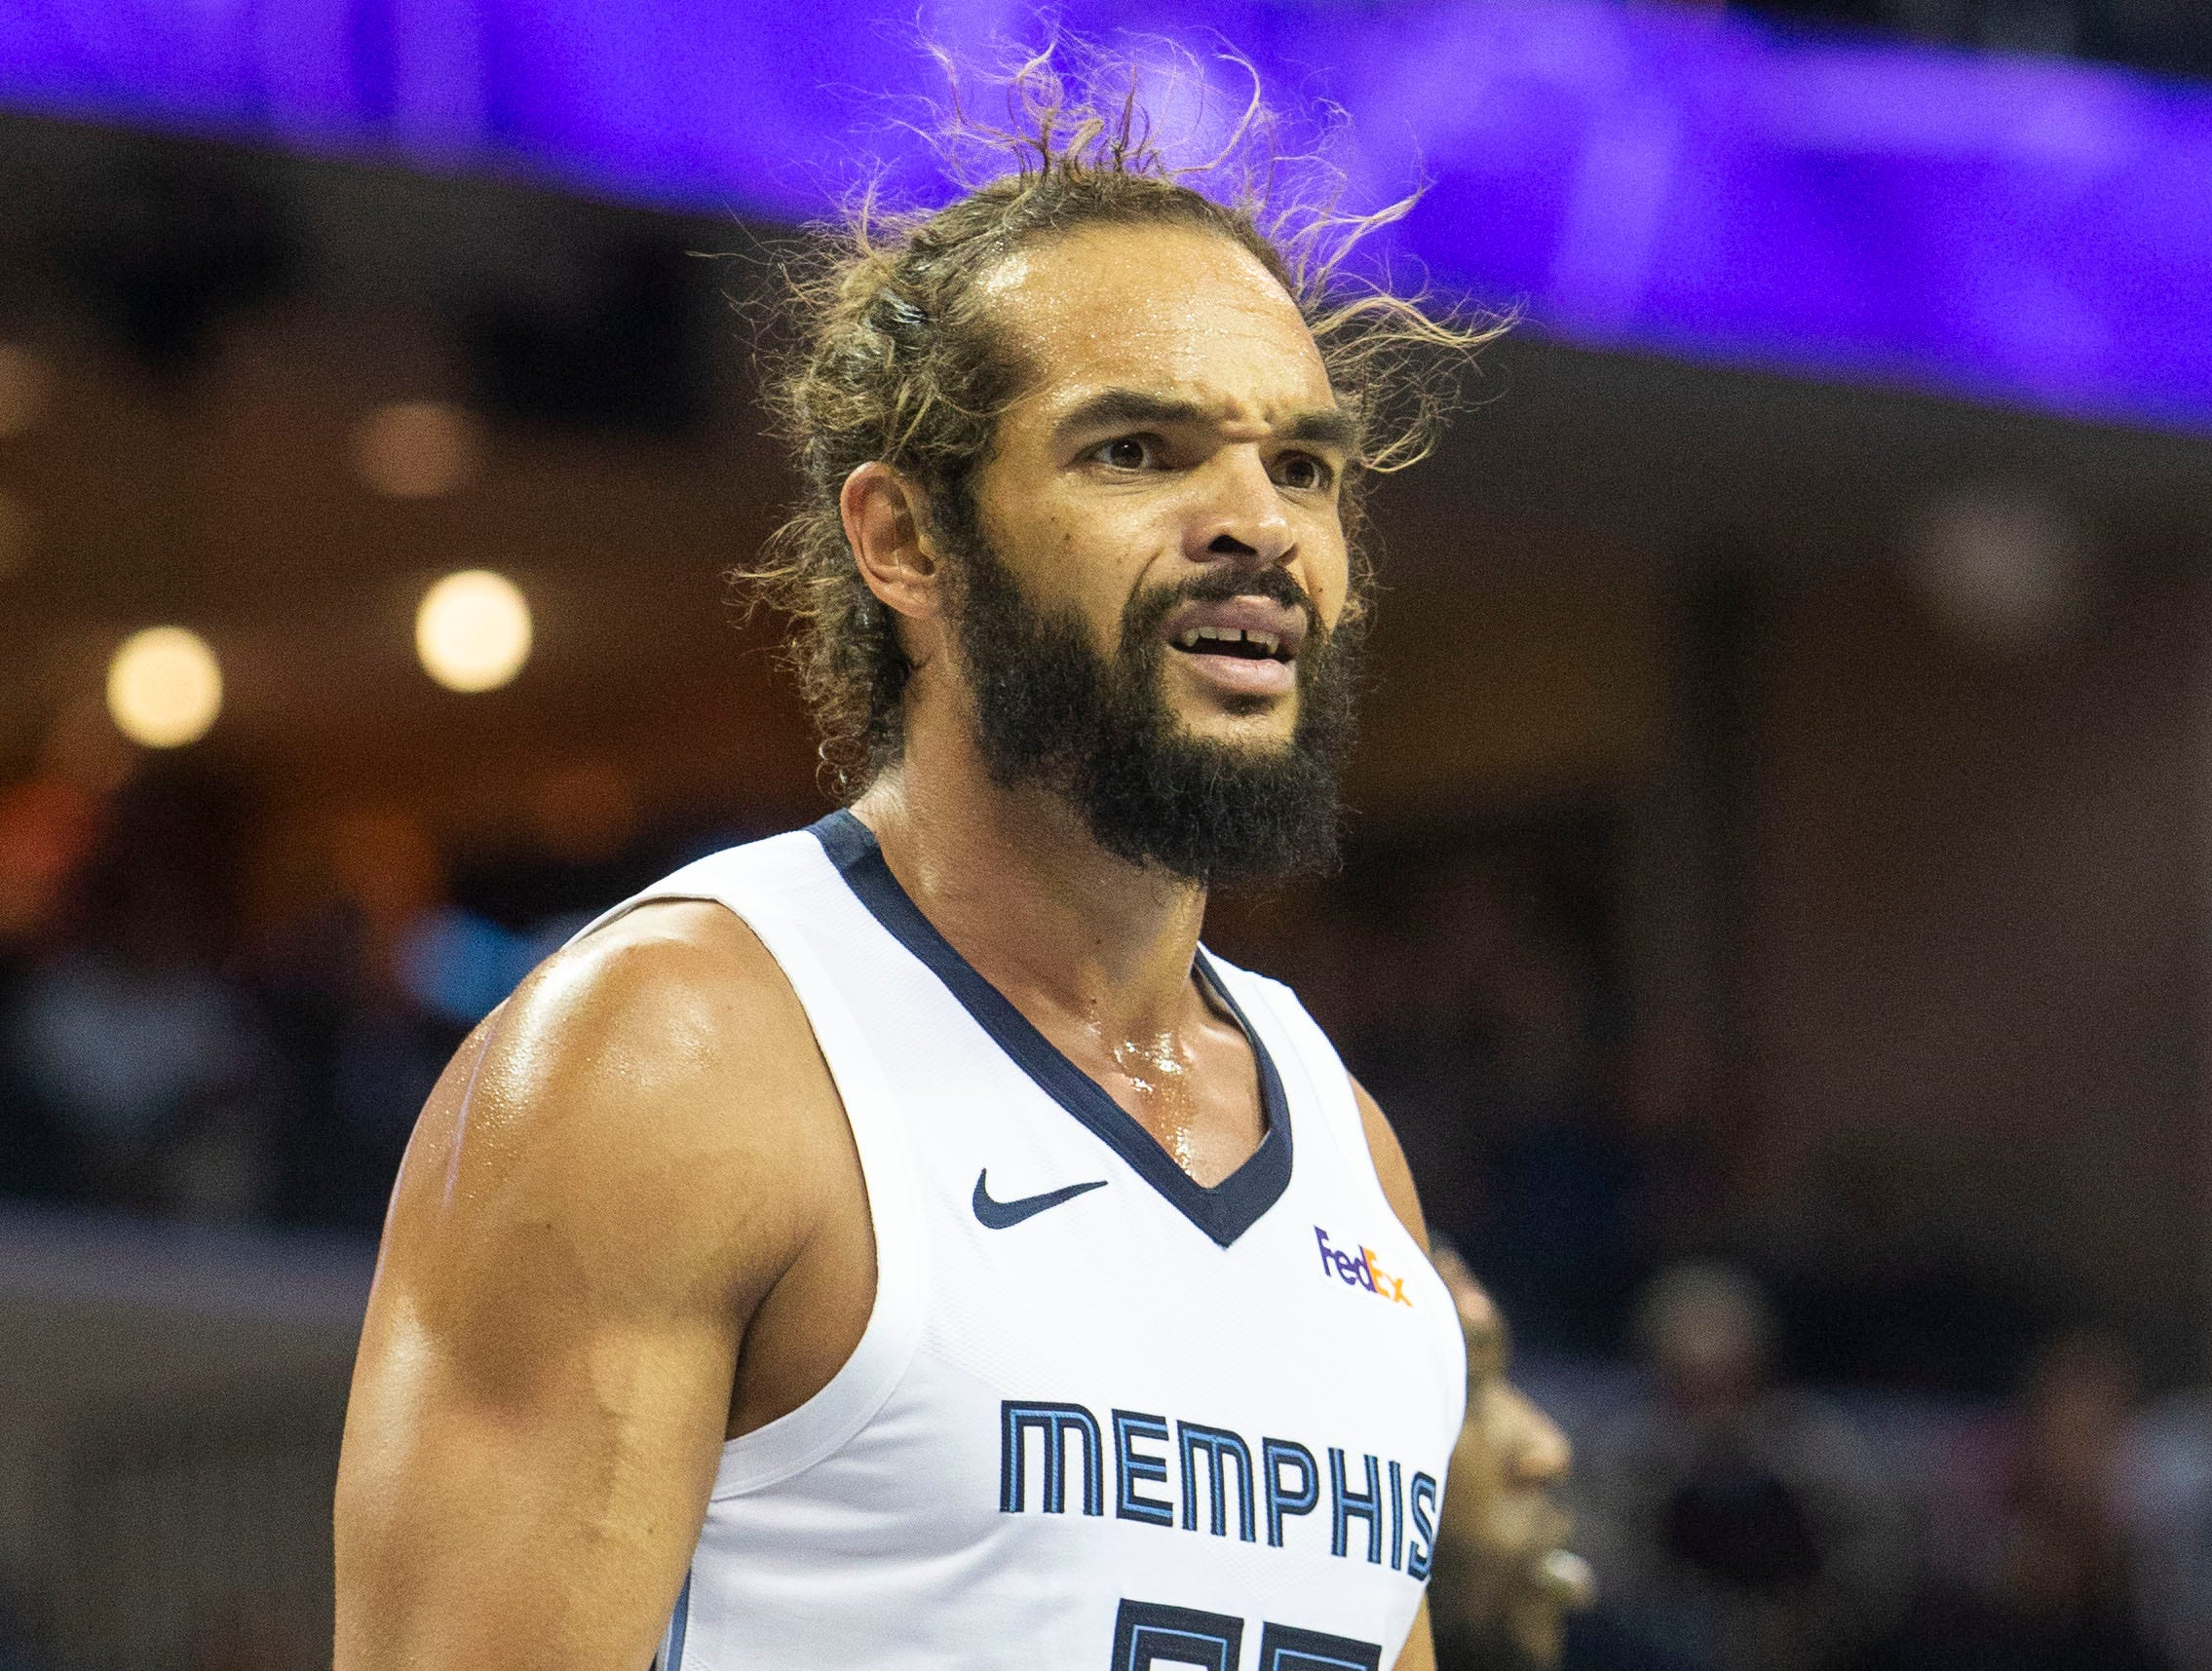 Memphis Grizzles center Joakim Noah (55) reacts to a call during a NBA basketball game between the Memphis Grizzlies and the  Los Angeles Clippers in the Fedex Forum, Wednesday, Dec. 5, 2018.